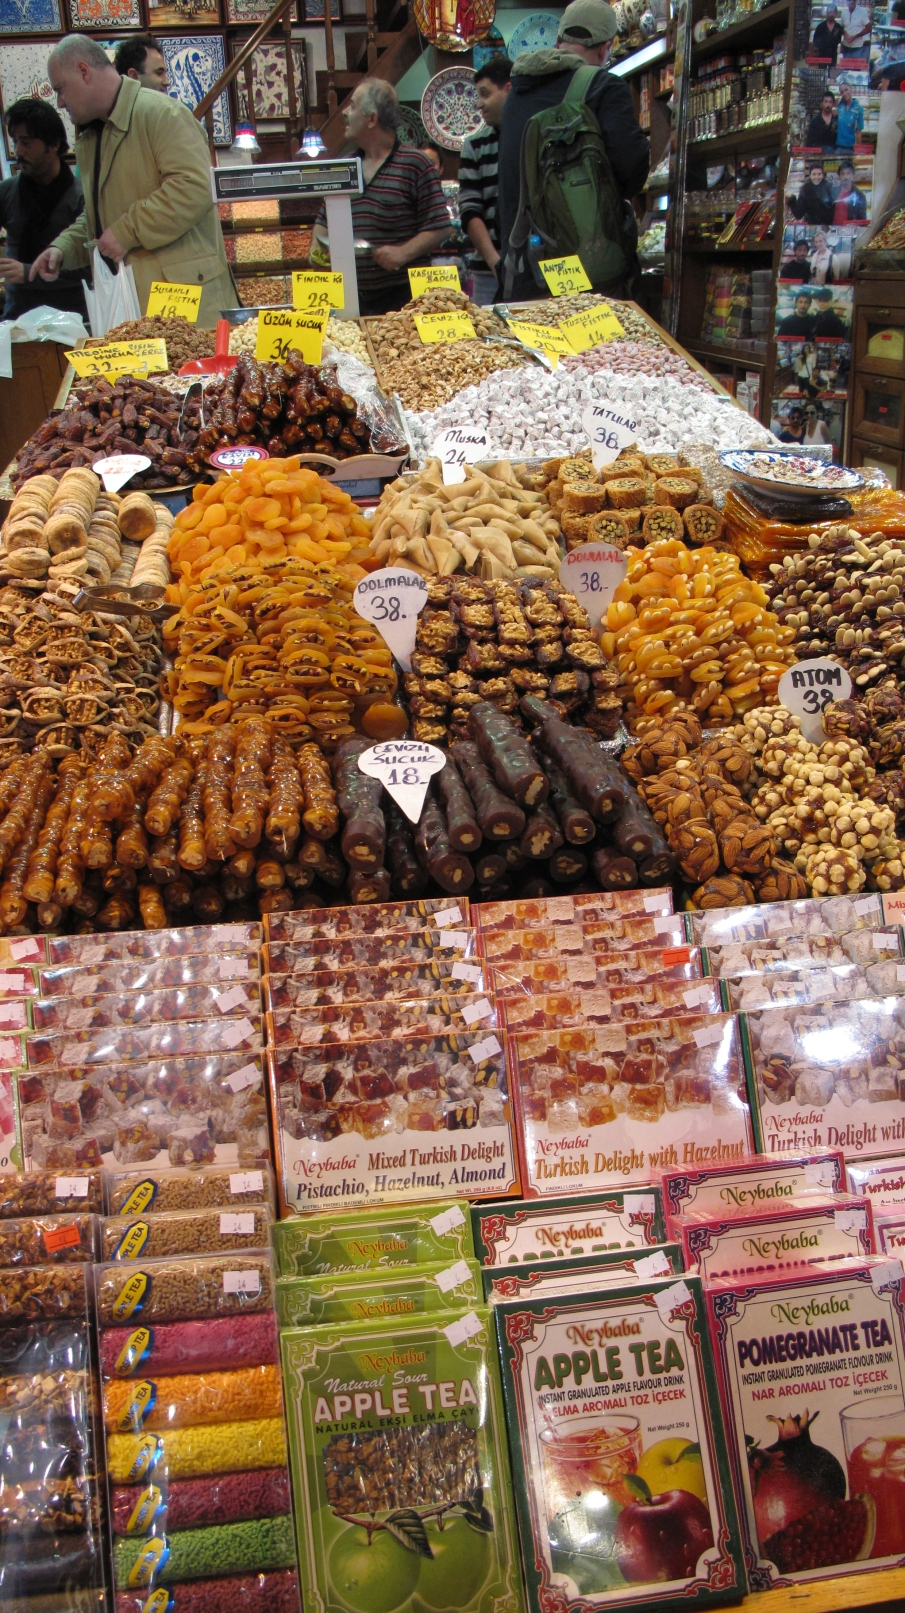 Abundance of nuts and sweets!